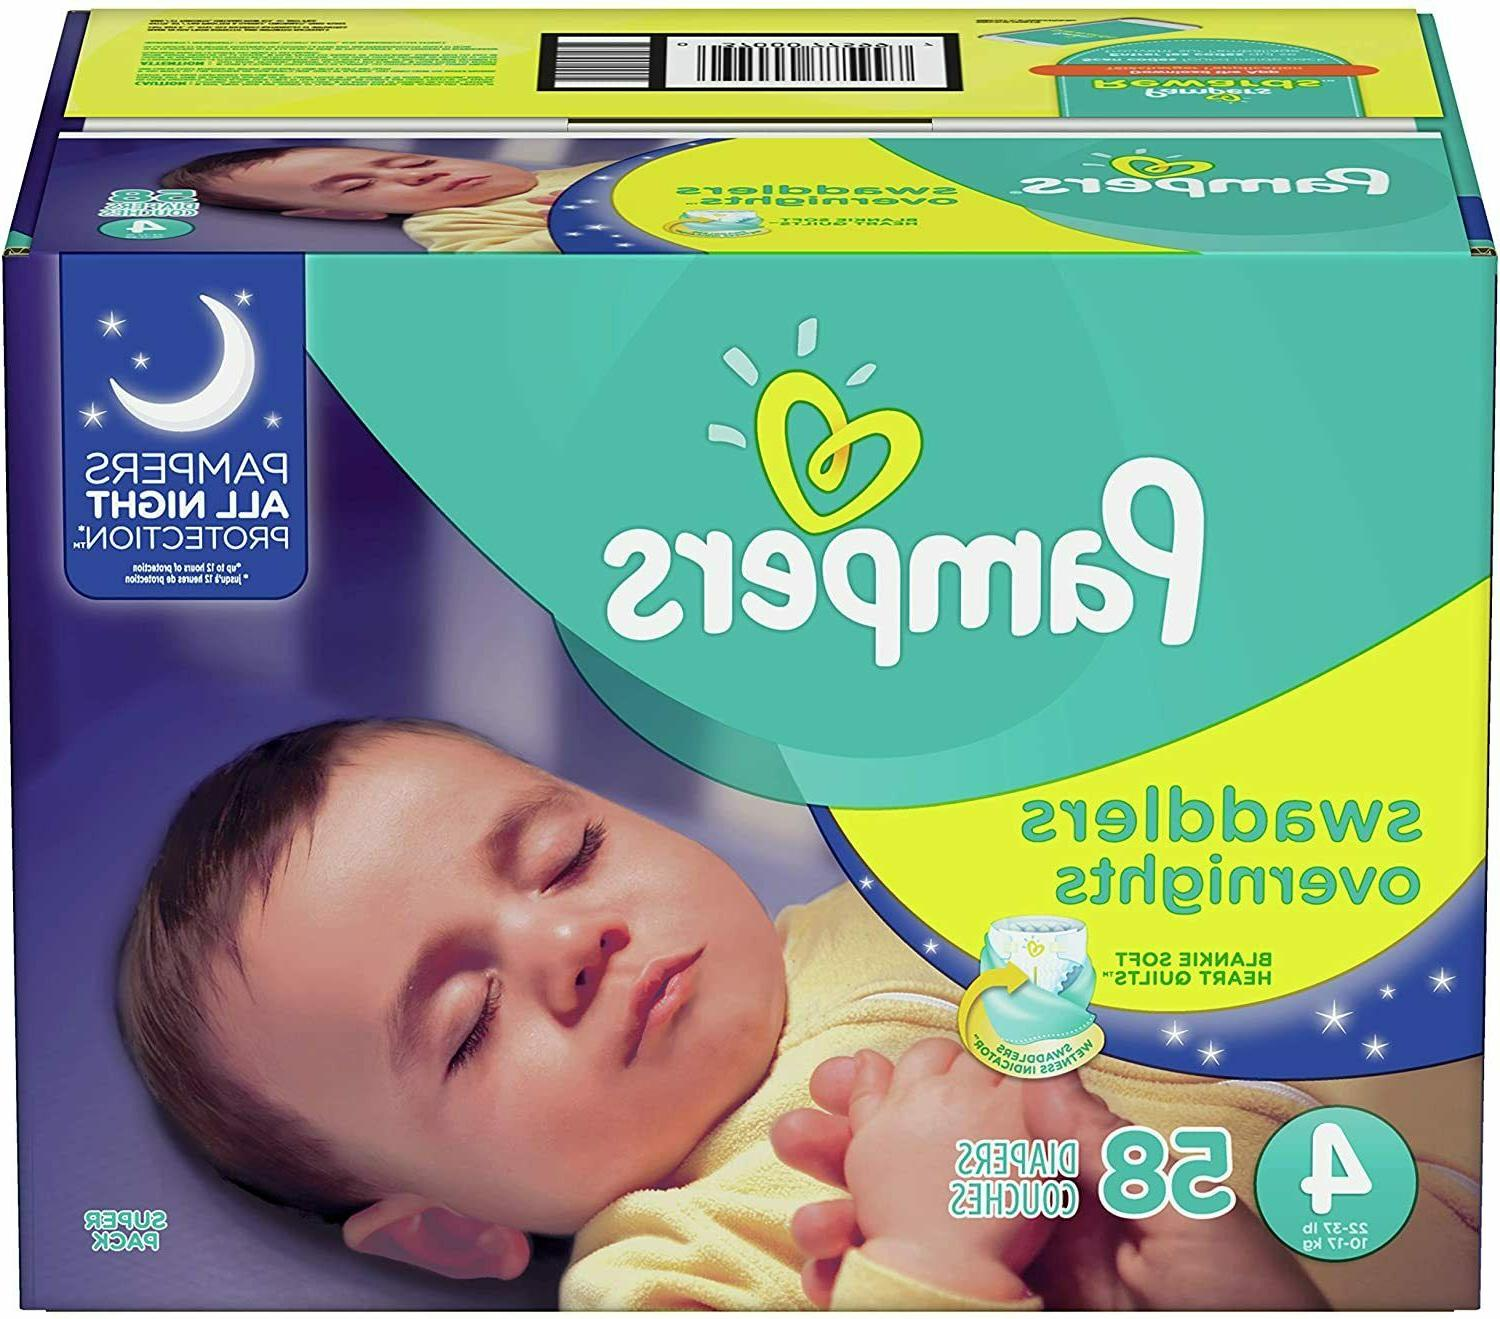 Pampers Overnight Diapers -